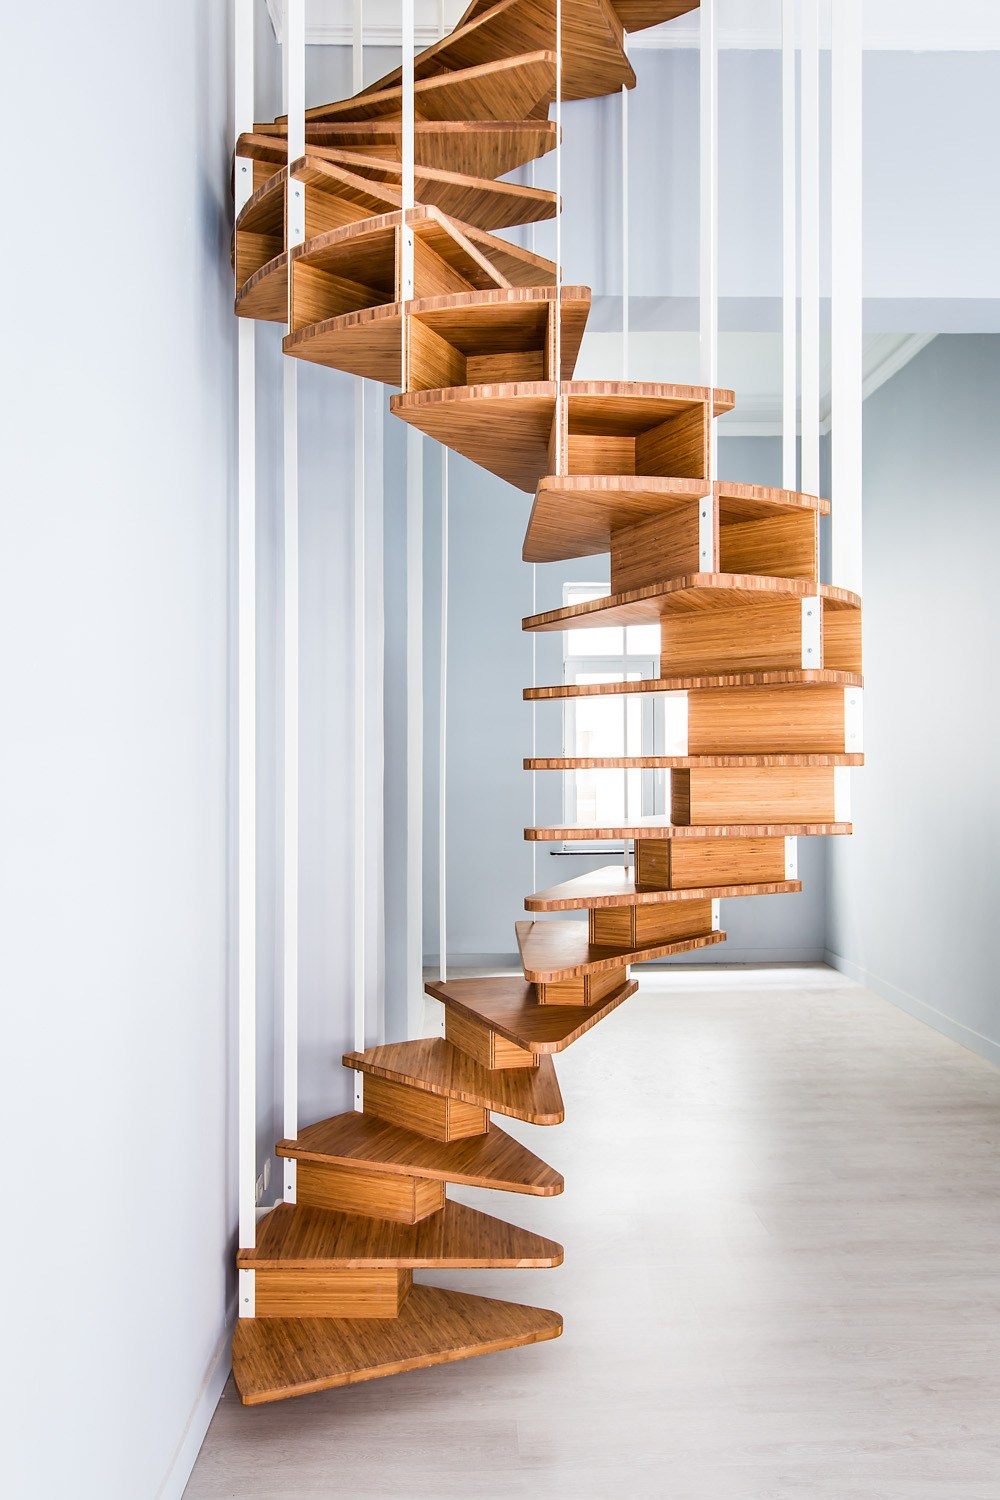 How to build a wooden spiral staircase my staircase gallery for Square spiral staircase plans hall